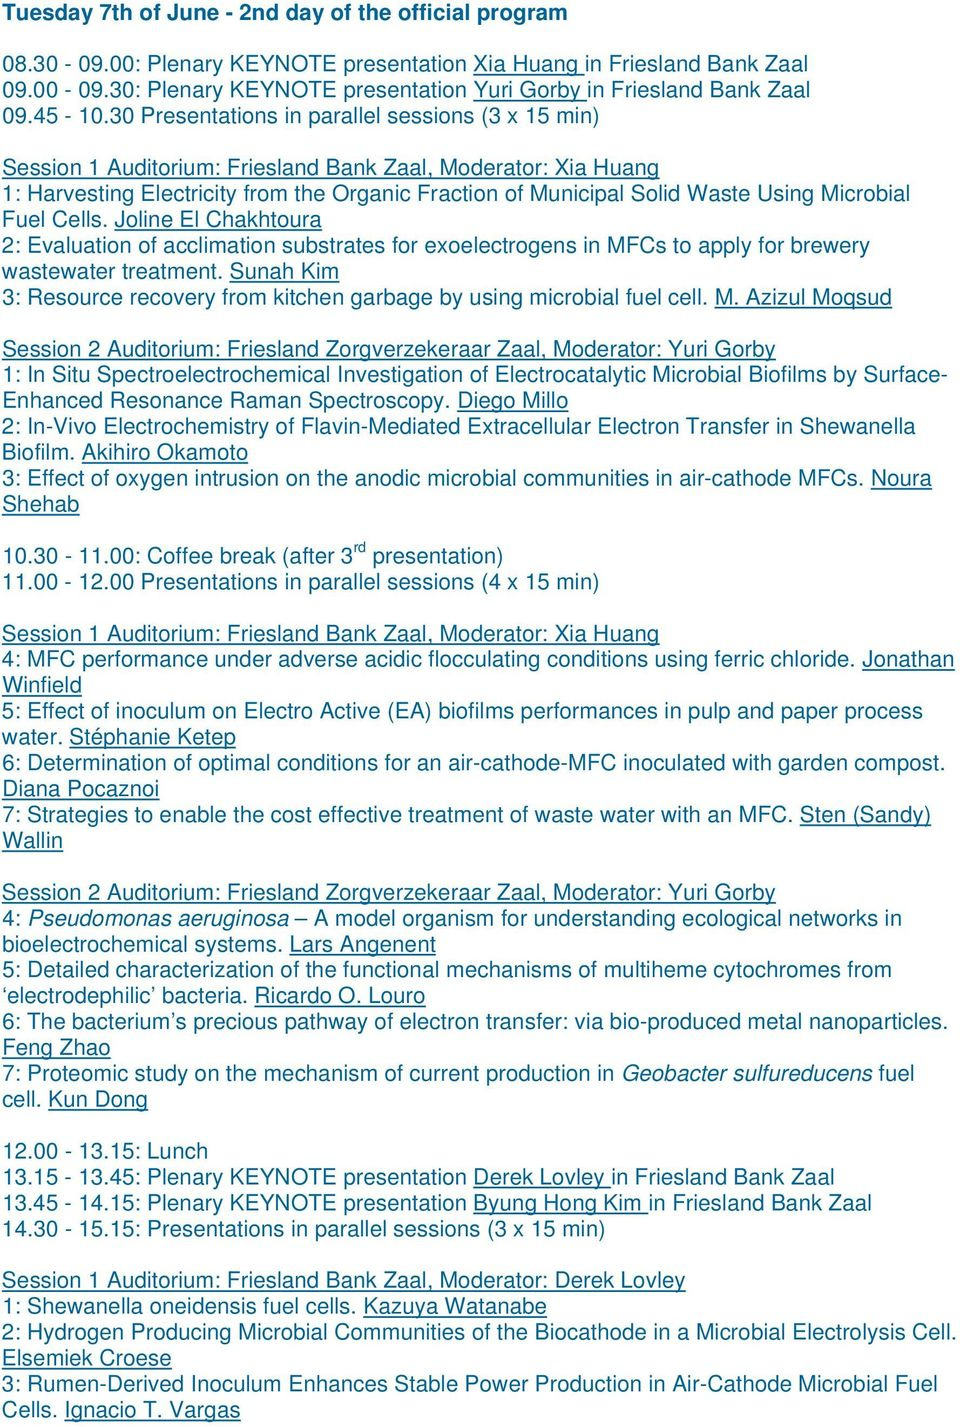 30 Presentations in parallel sessions (3 x 15 min) Session 1 Auditorium: Friesland Bank Zaal, Moderator: Xia Huang 1: Harvesting Electricity from the Organic Fraction of Municipal Solid Waste Using